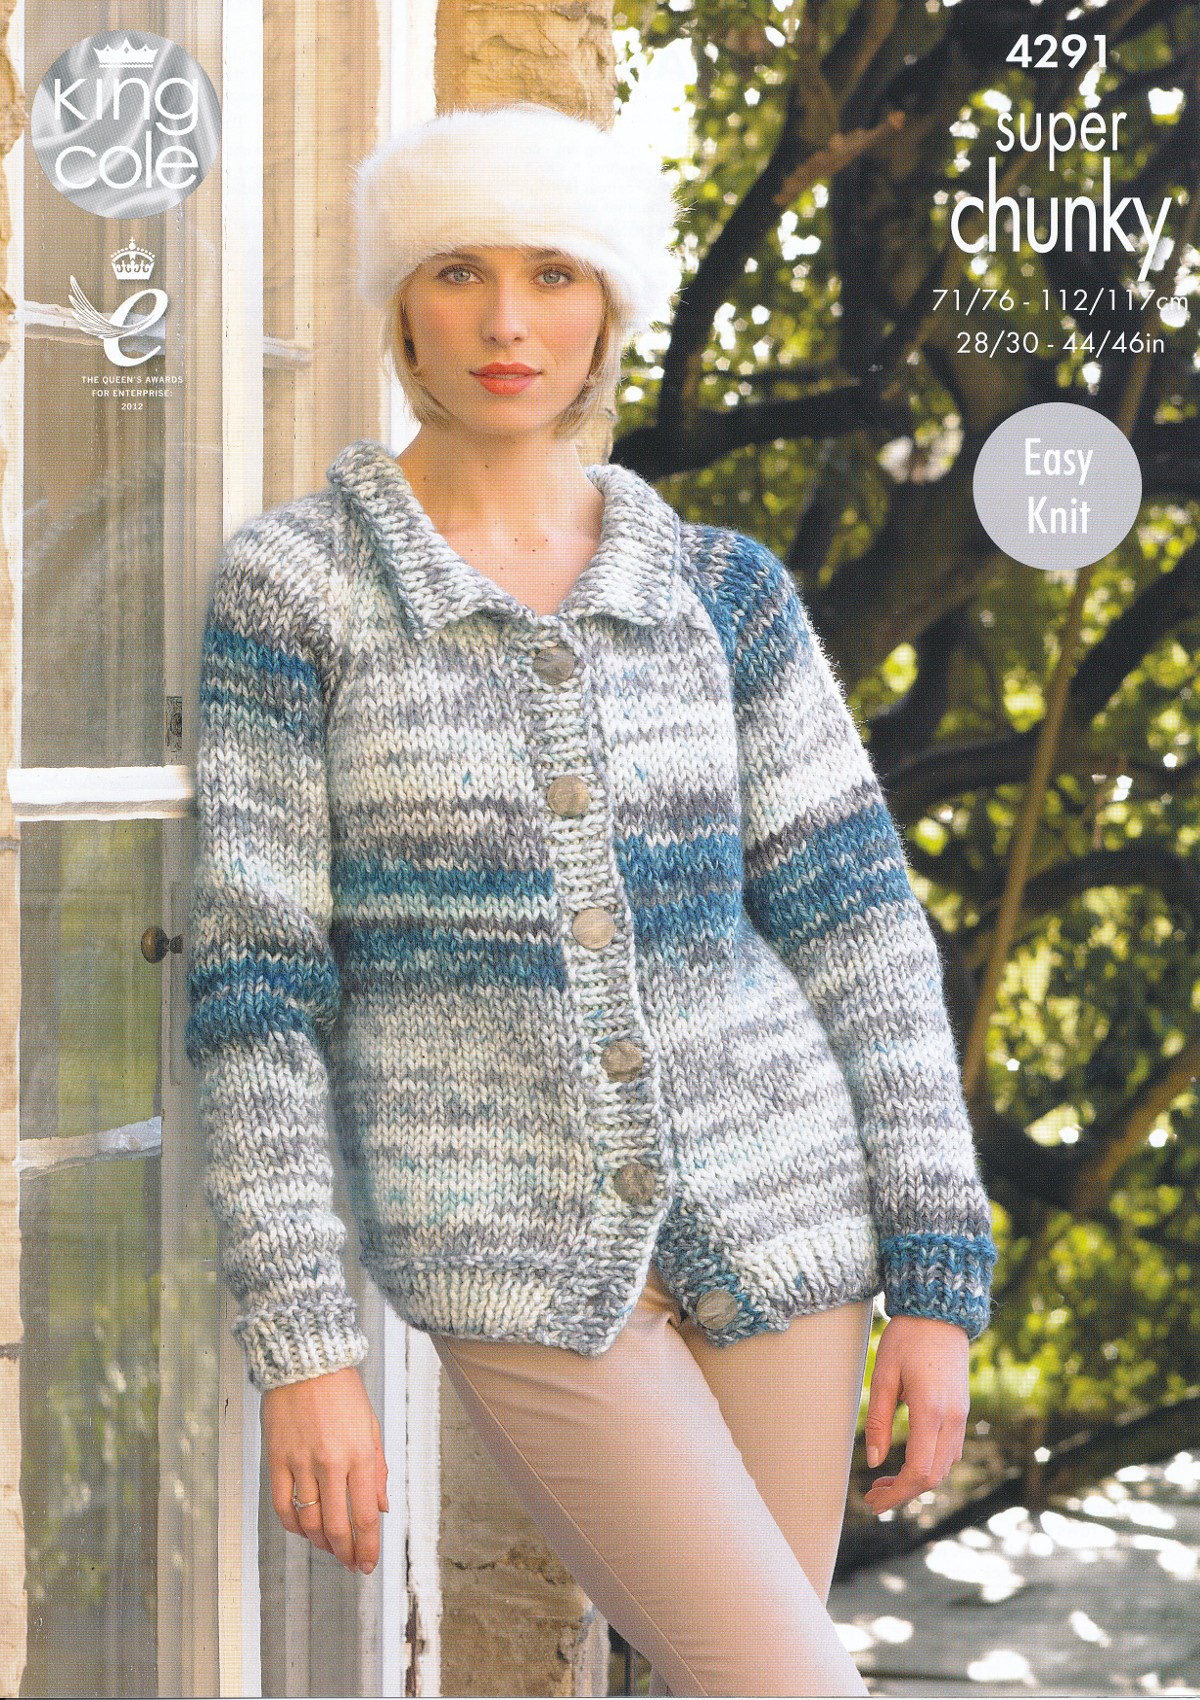 Ladies super chunky knitting pattern king cole polo neck jumper ladies super chunky knitting pattern king cole polo neck jumper cardigan 4291 bankloansurffo Gallery